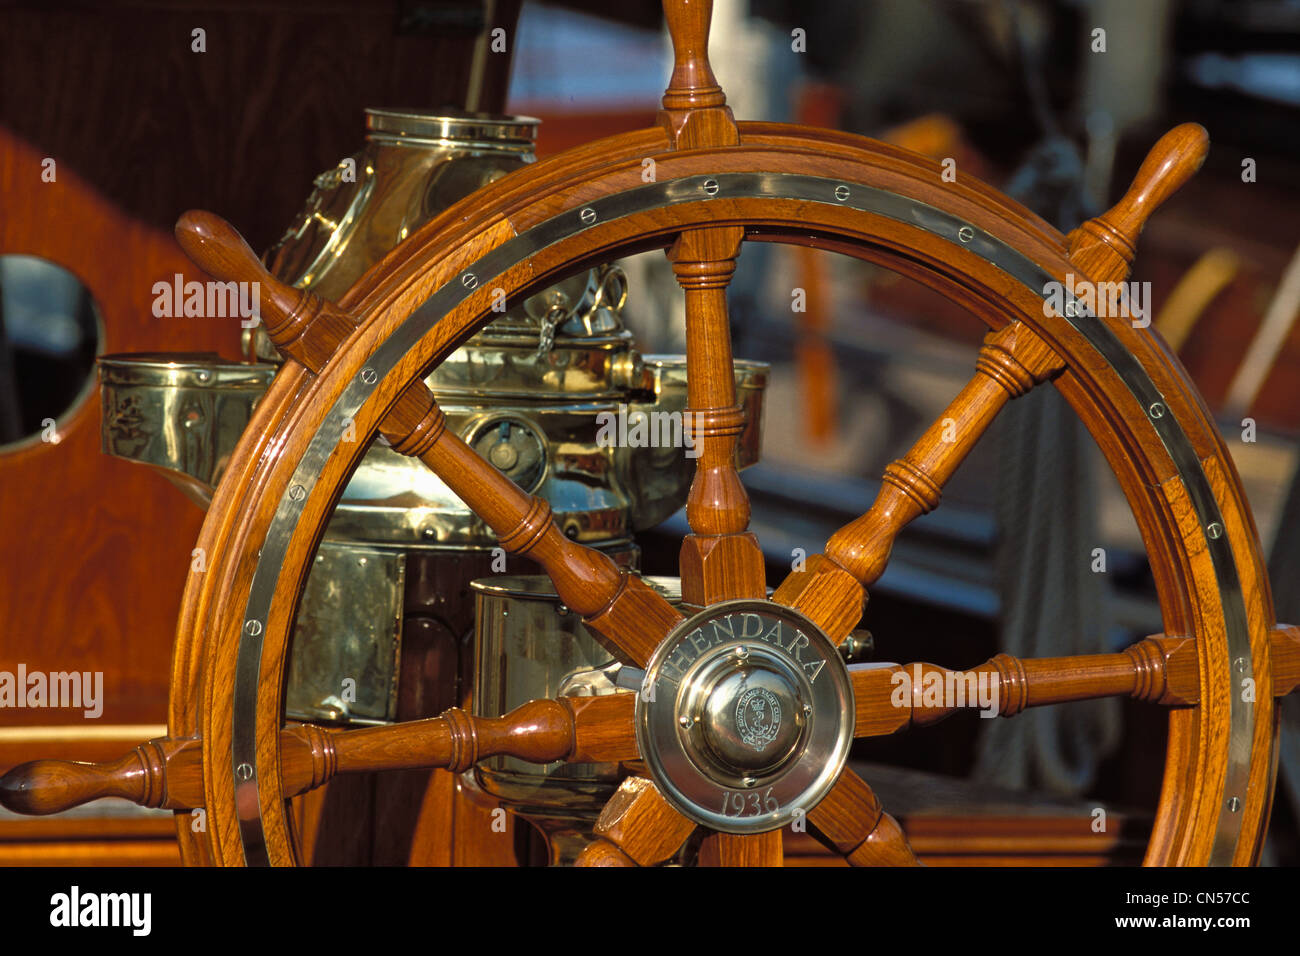 France, Alpes Maritimes, Thendara, gaff ketch of 1936, steering wheel - Stock Image